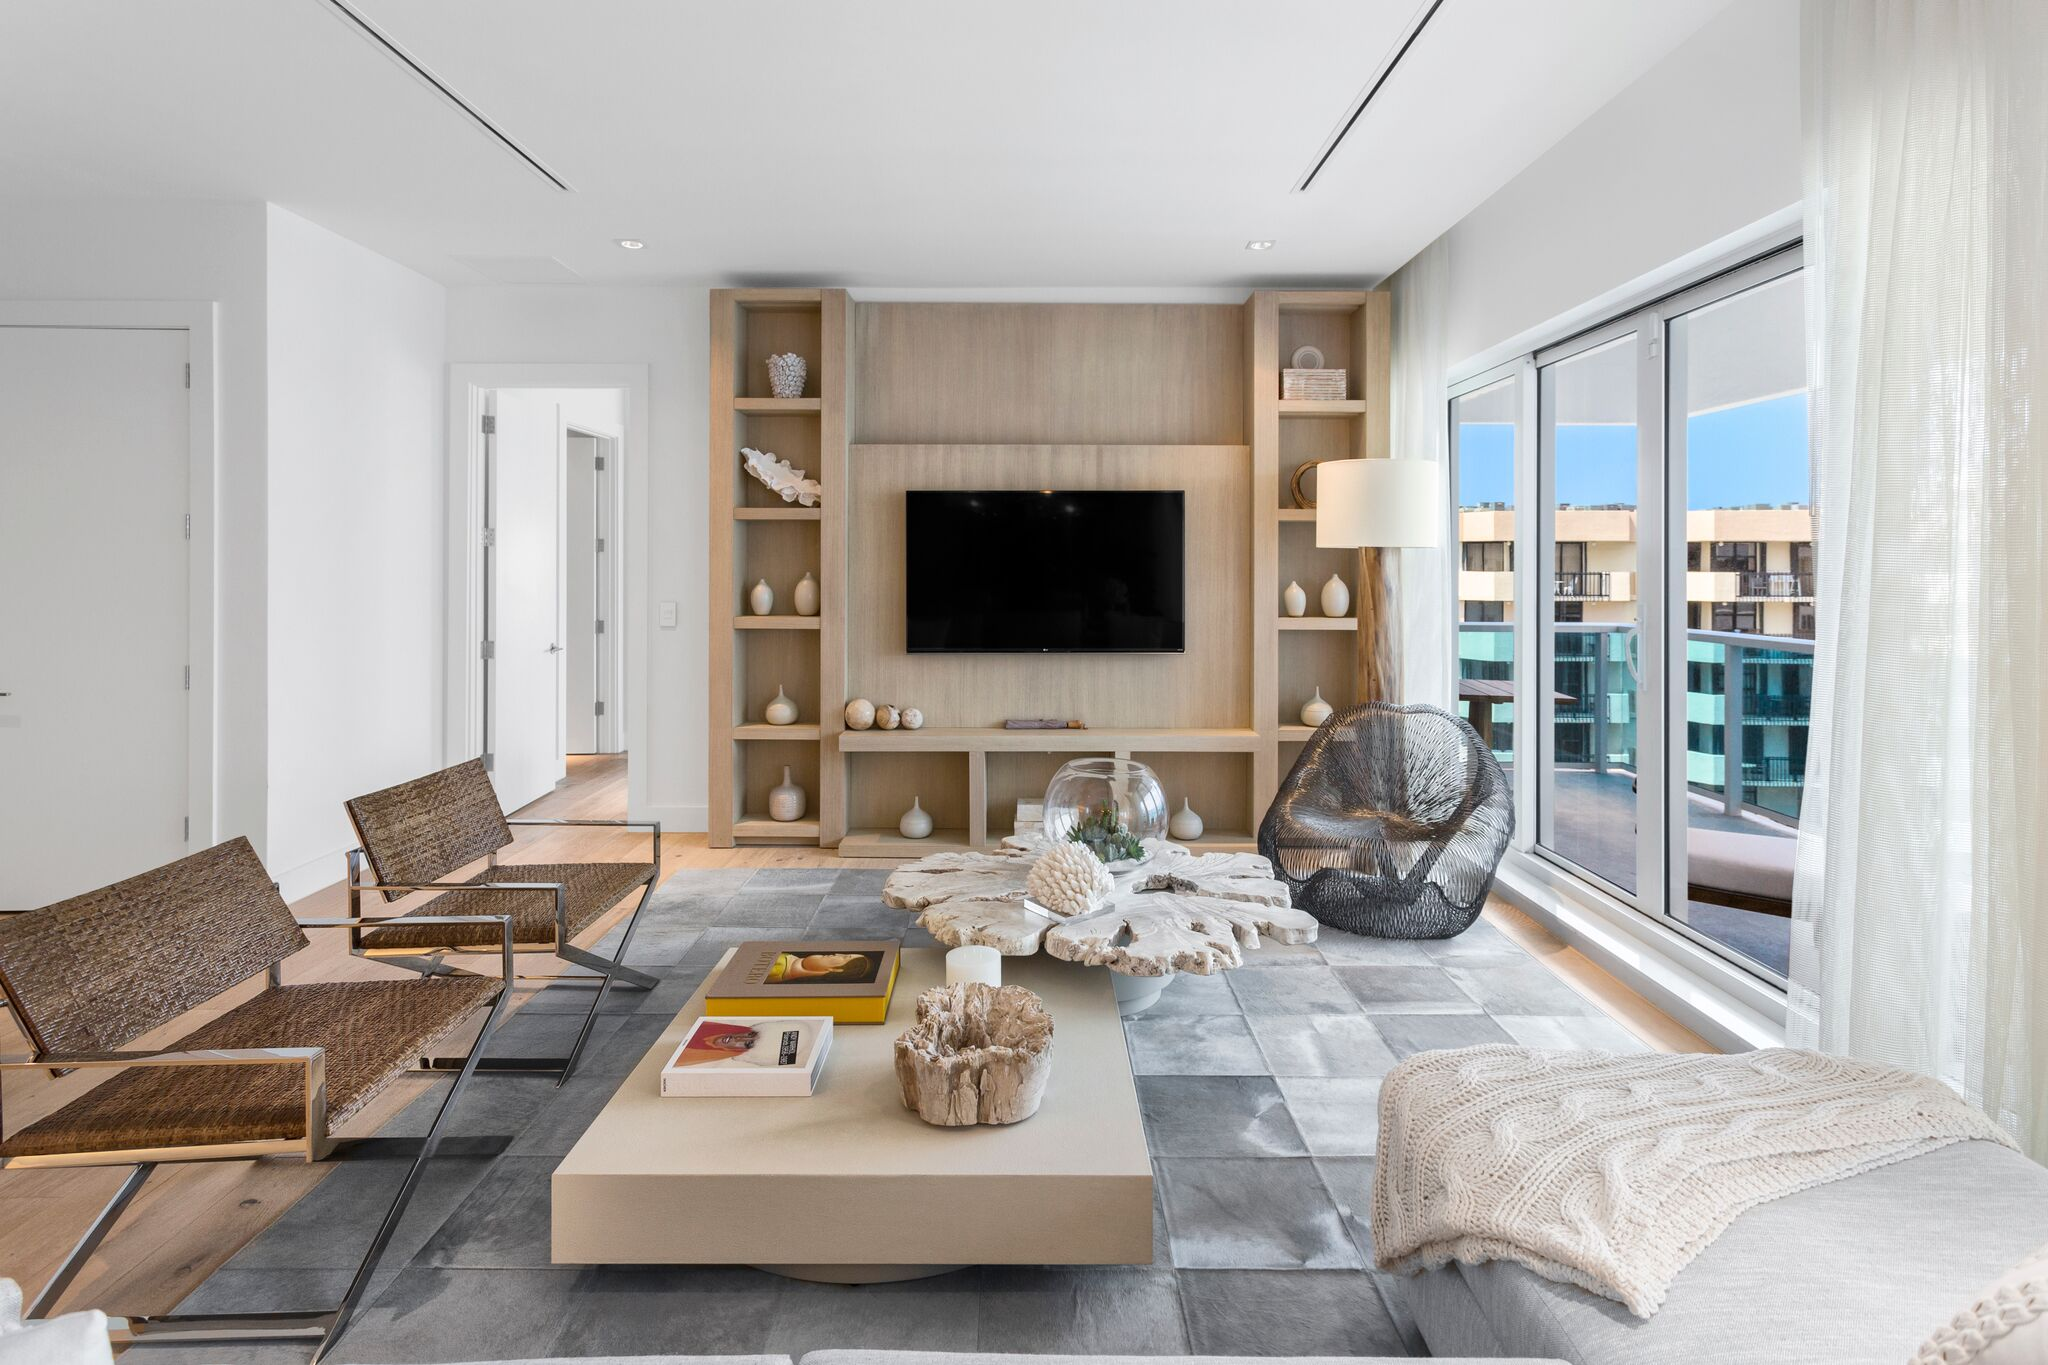 Tour the Newly Unveiled Penthouse 1612 of 1 Hotel & Homes Designed by Artefacto